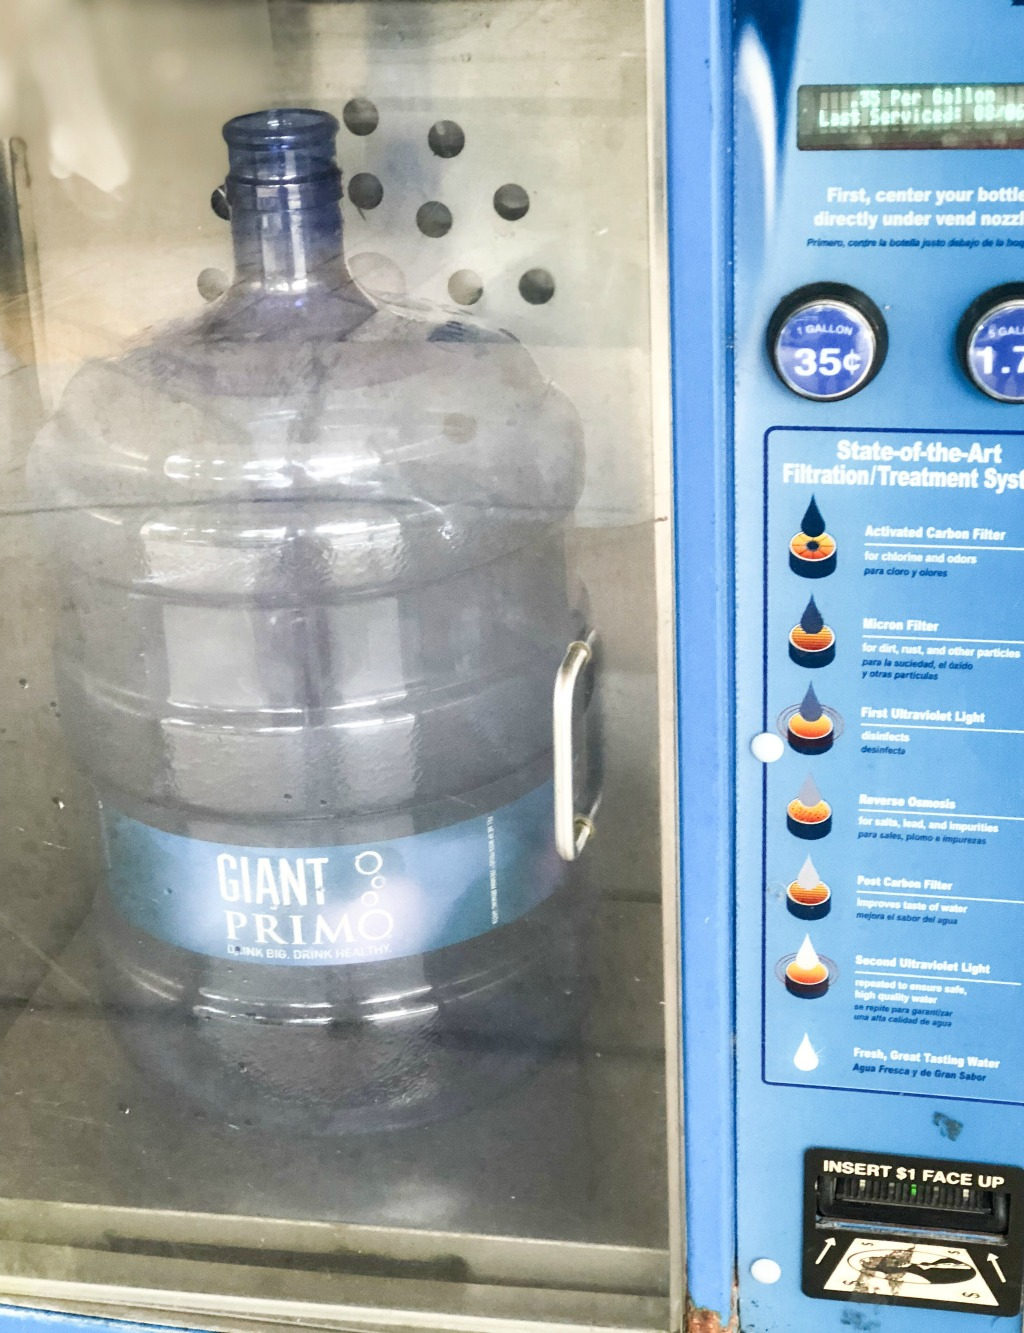 primo water dispenser filling station